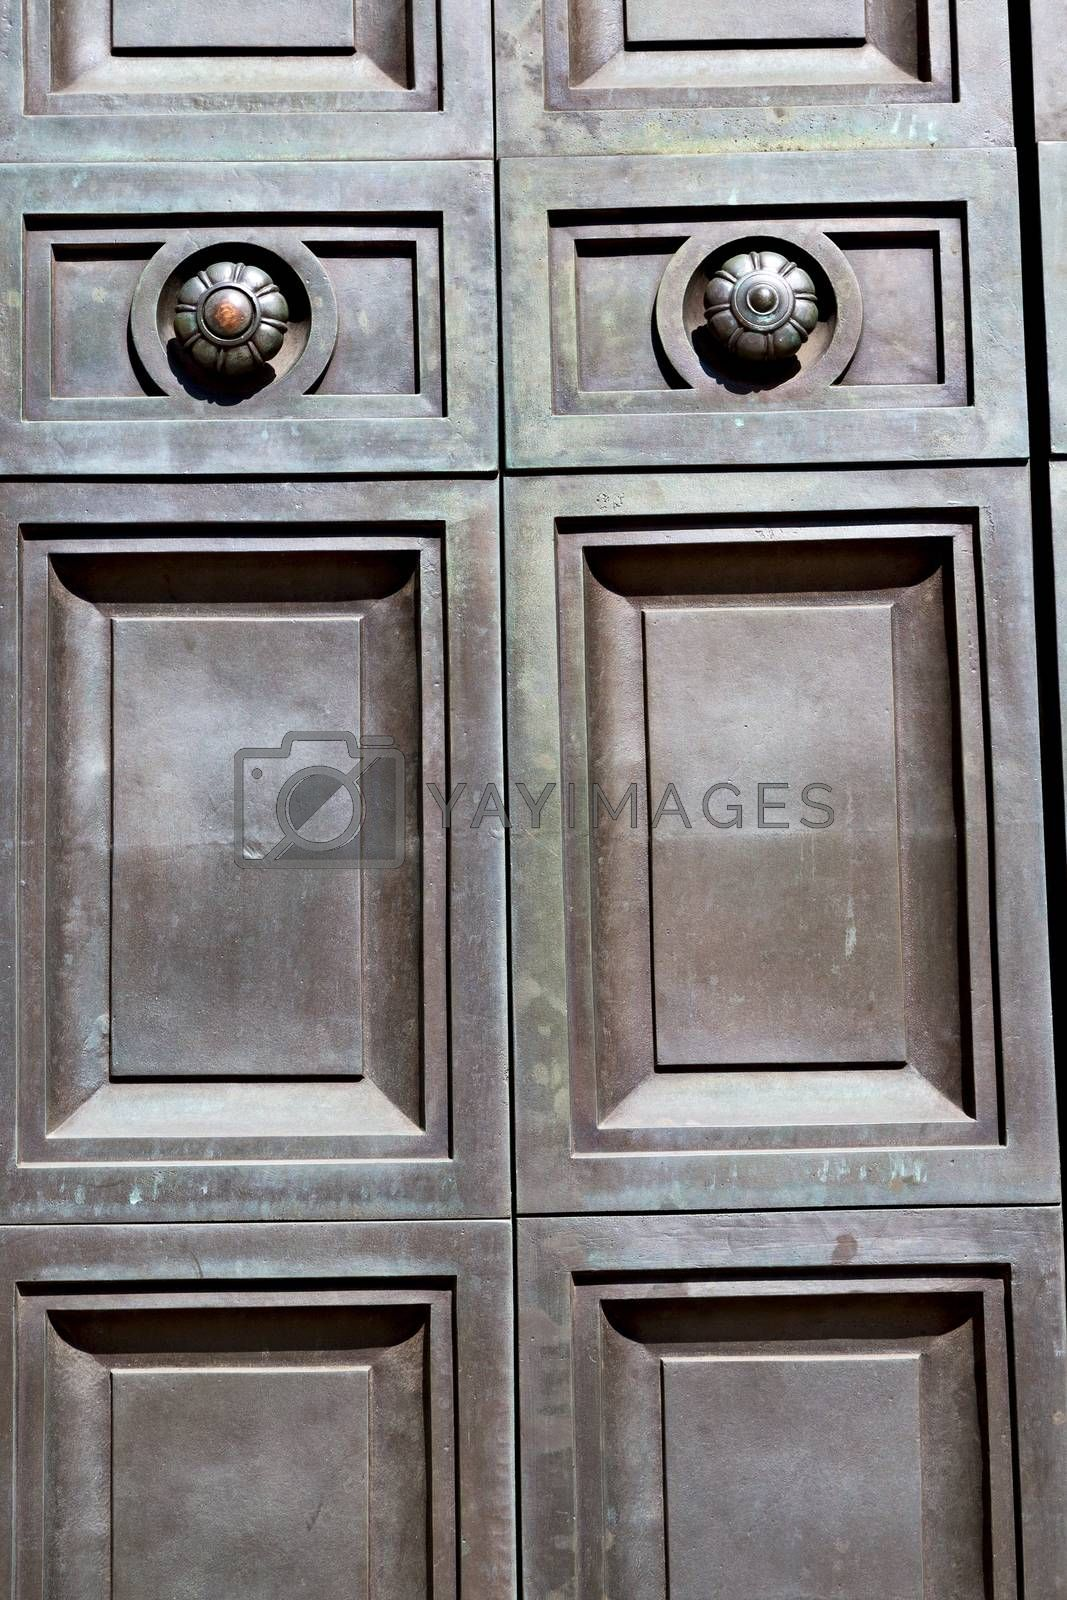 Royalty free image of in london antique brown door   and light by lkpro